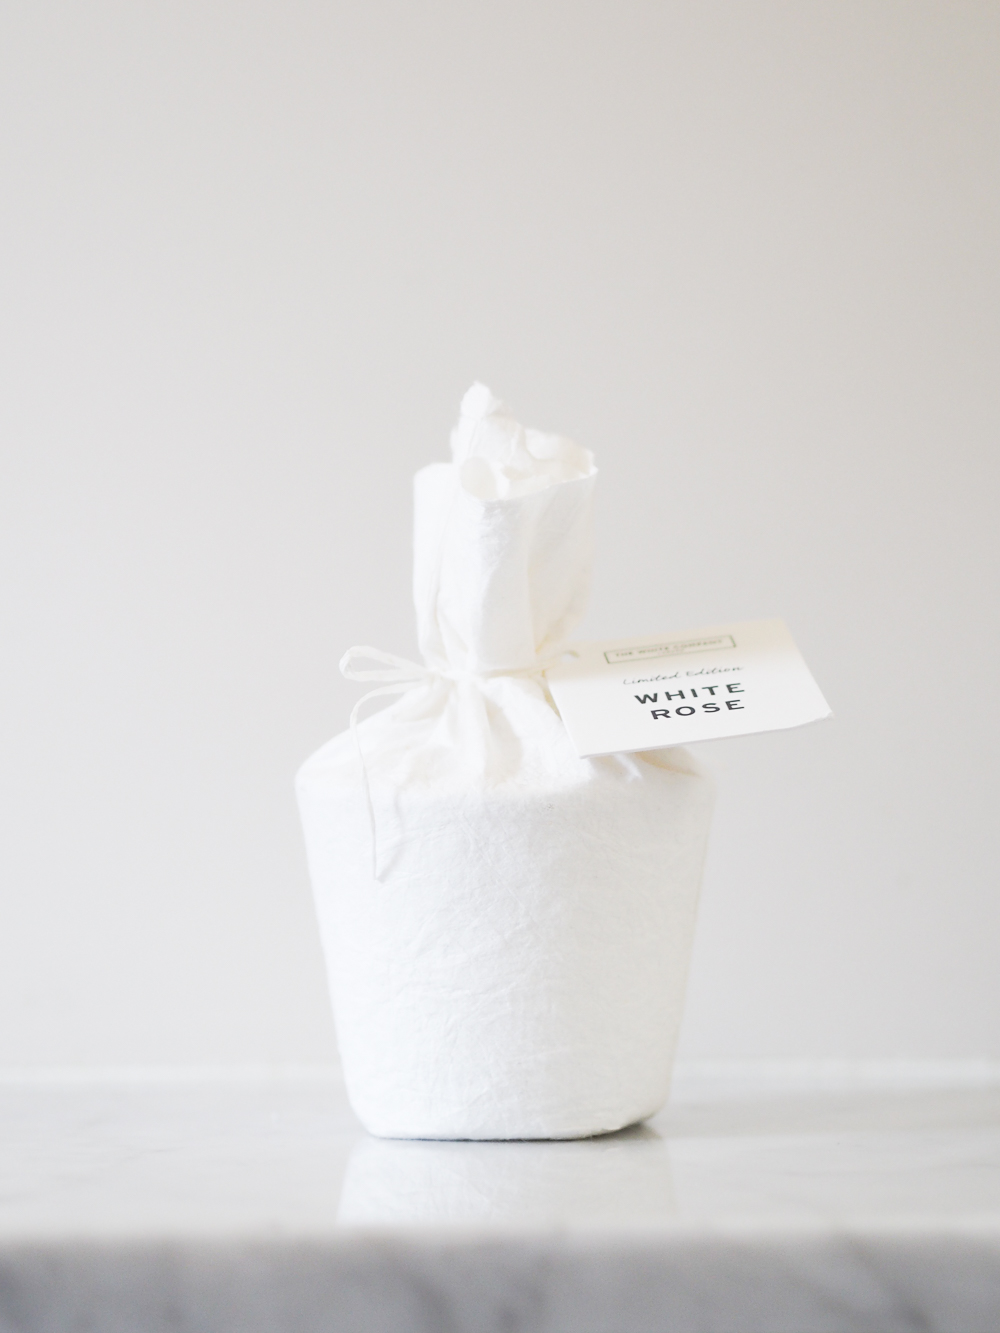 The White Company White Rose candle | Design Hunter